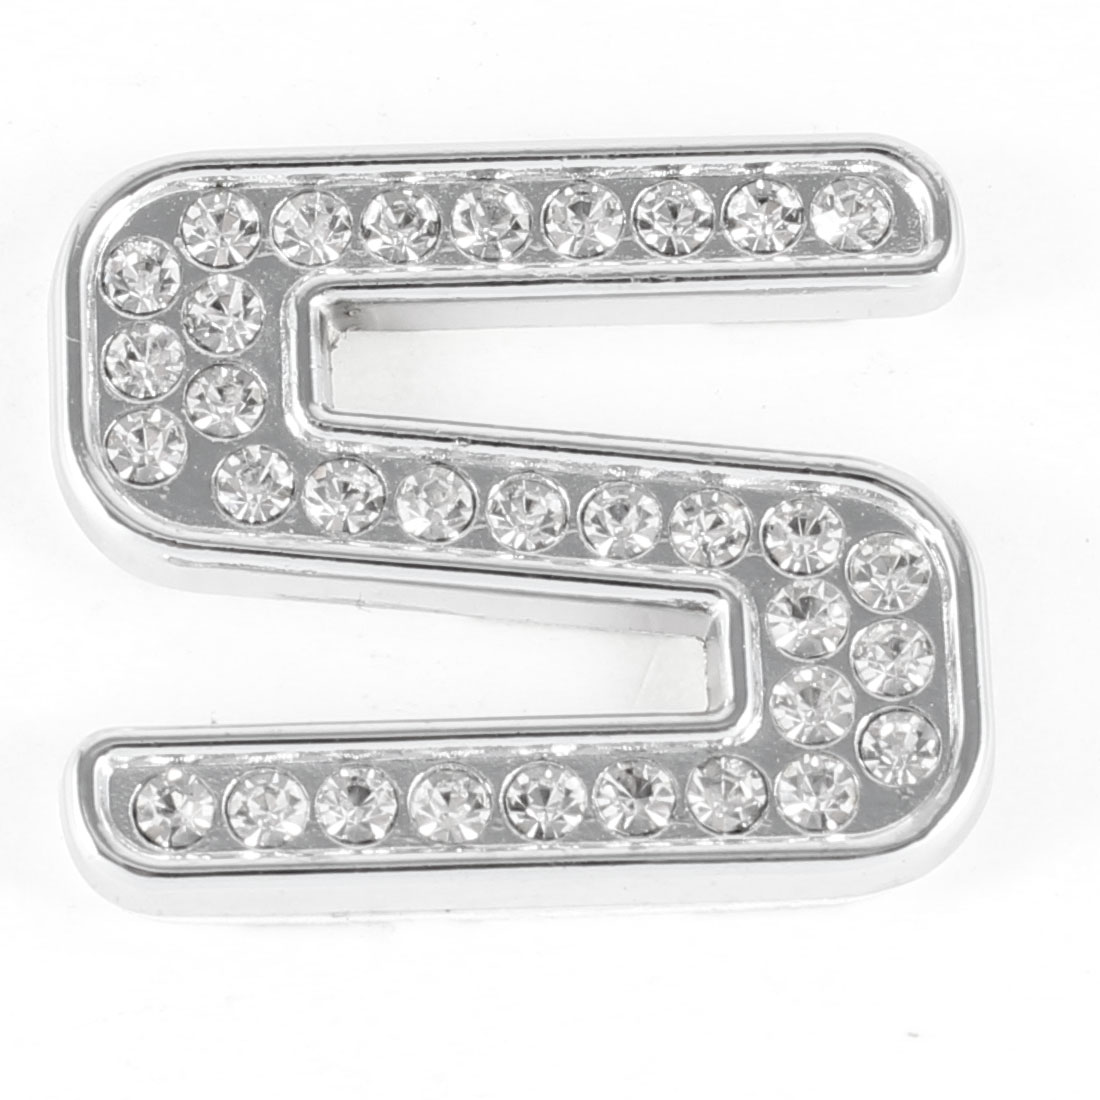 Bling Rhinestones Silver Tone Letter S Style 3D Sticker for Car Autocycle